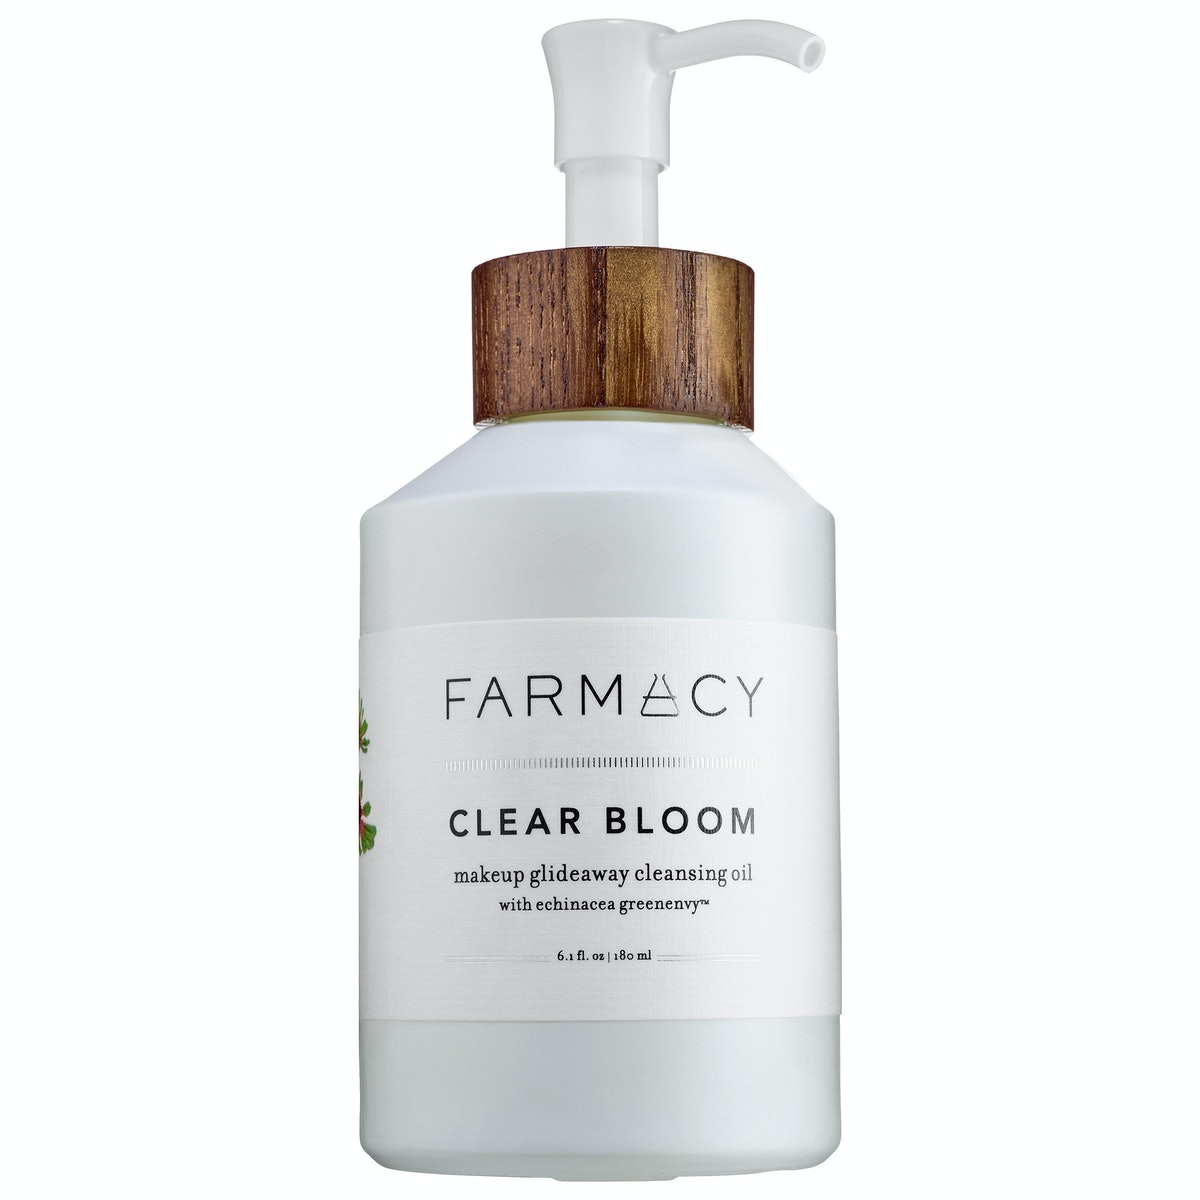 Farmacy Clear Bloom Makeup Glideaway Cleansing Oil,